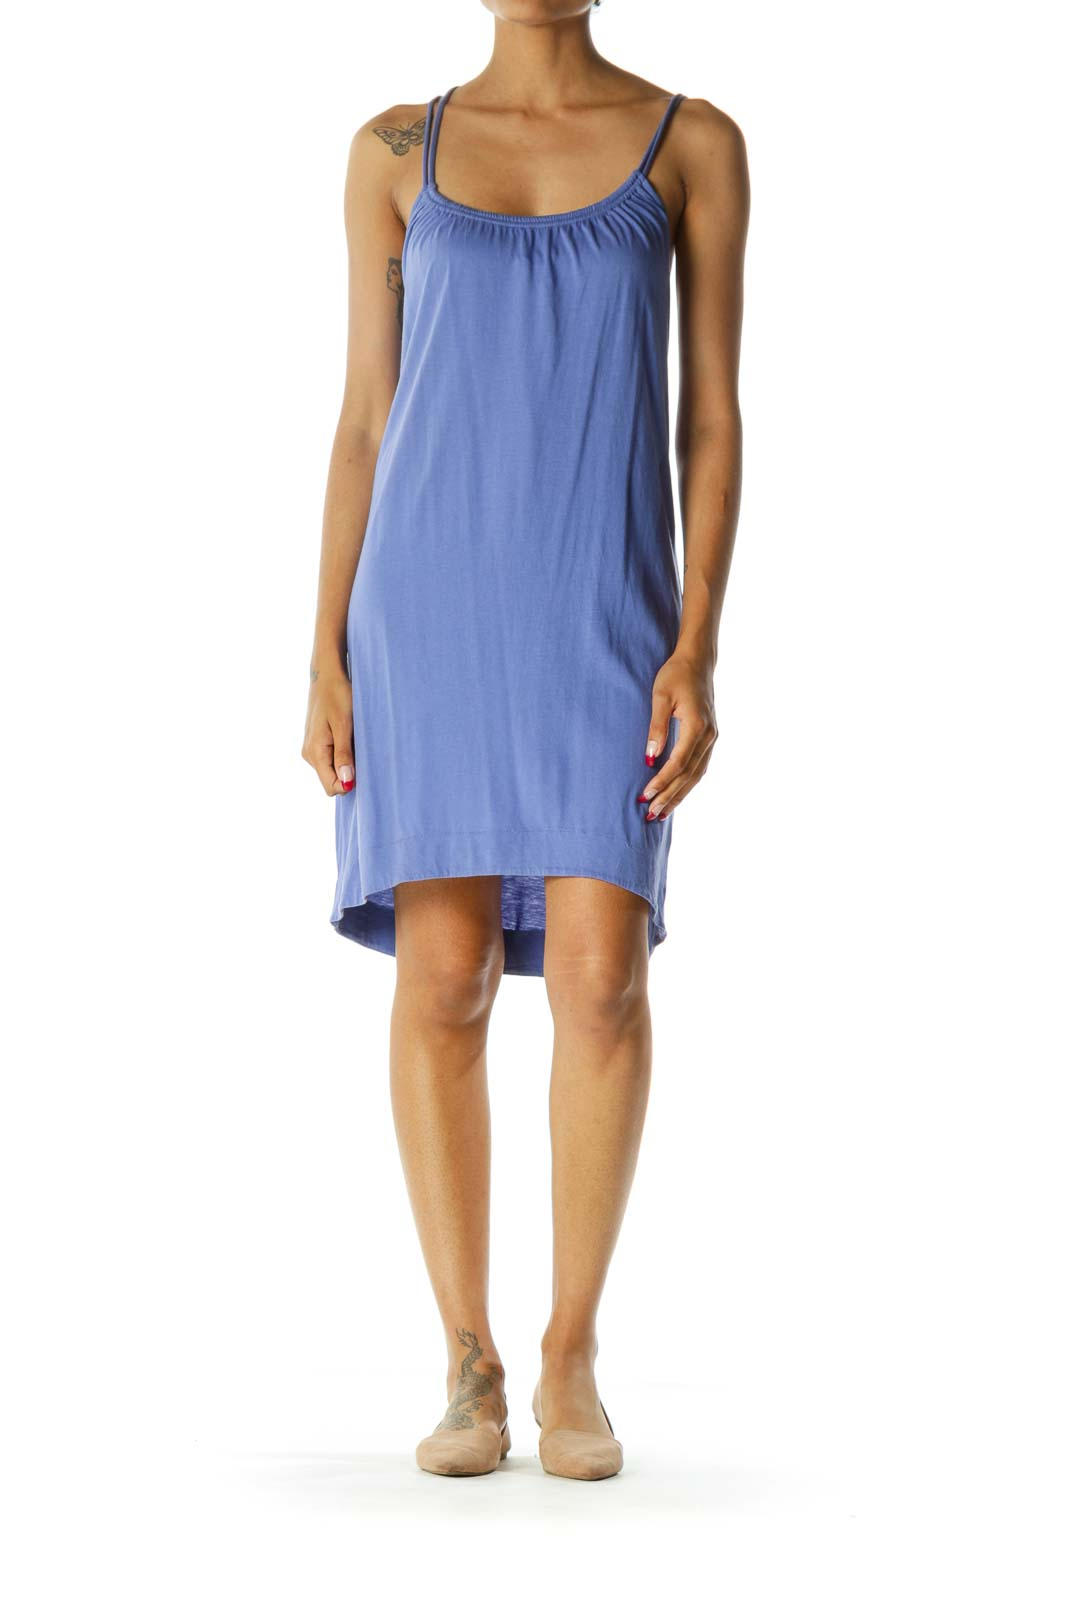 Blue Elastic Neckline Spaghetti Strap Soft Lightweight Dress